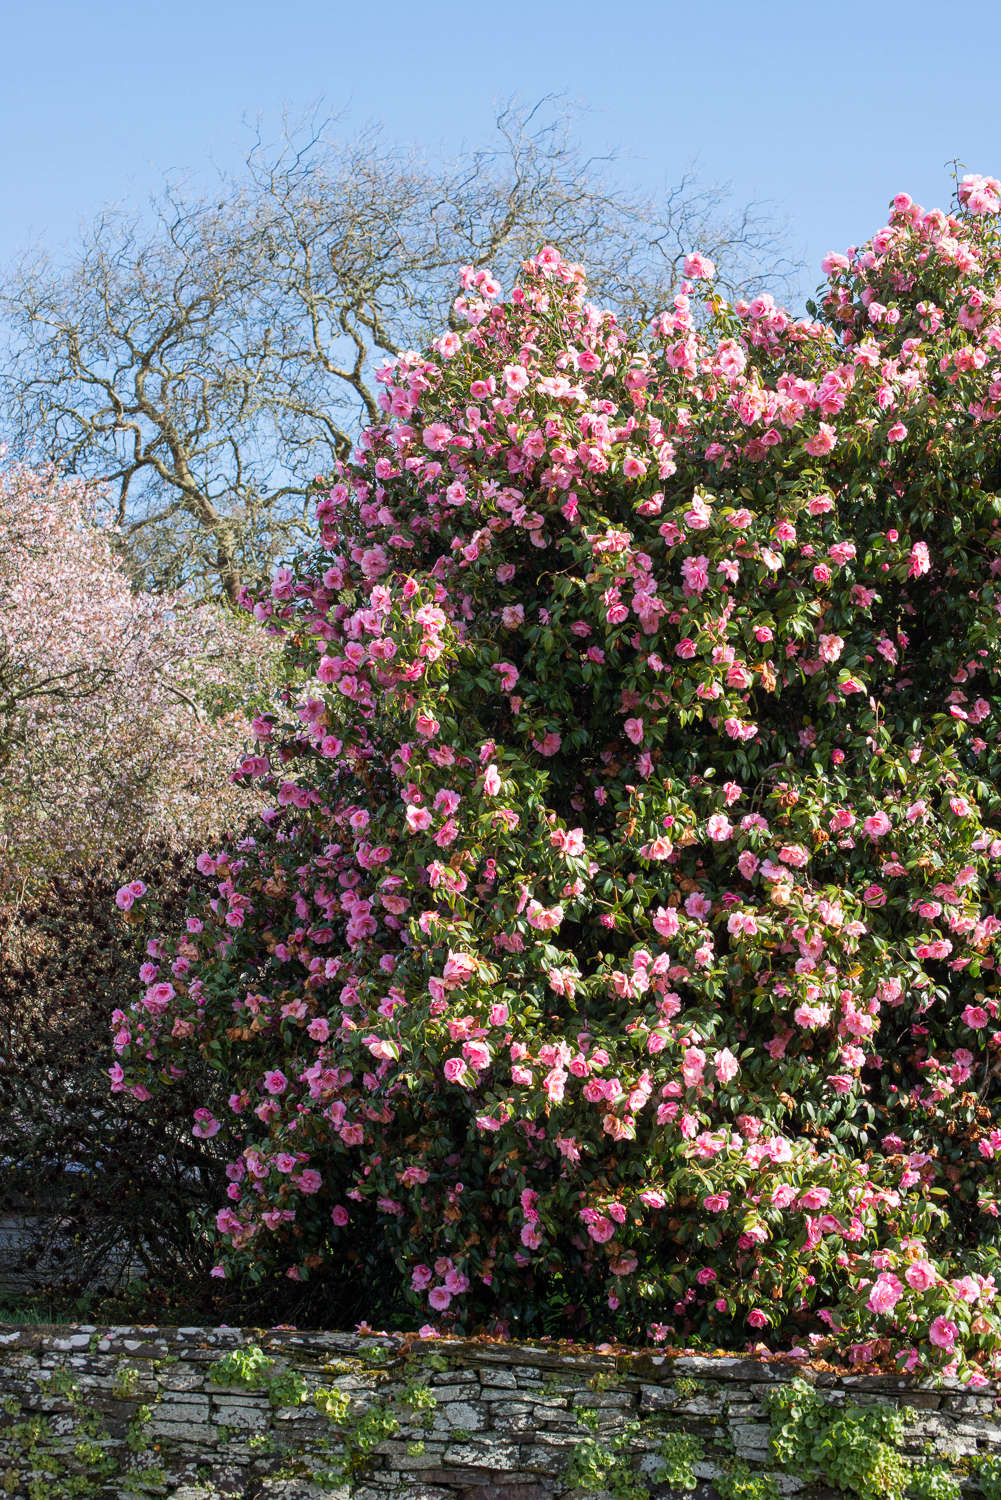 Mammoth camellias grow en masse in Cornwall. See more at Landscaping Ideas: The Case for Camellias. Photograph by Heather Edwards.